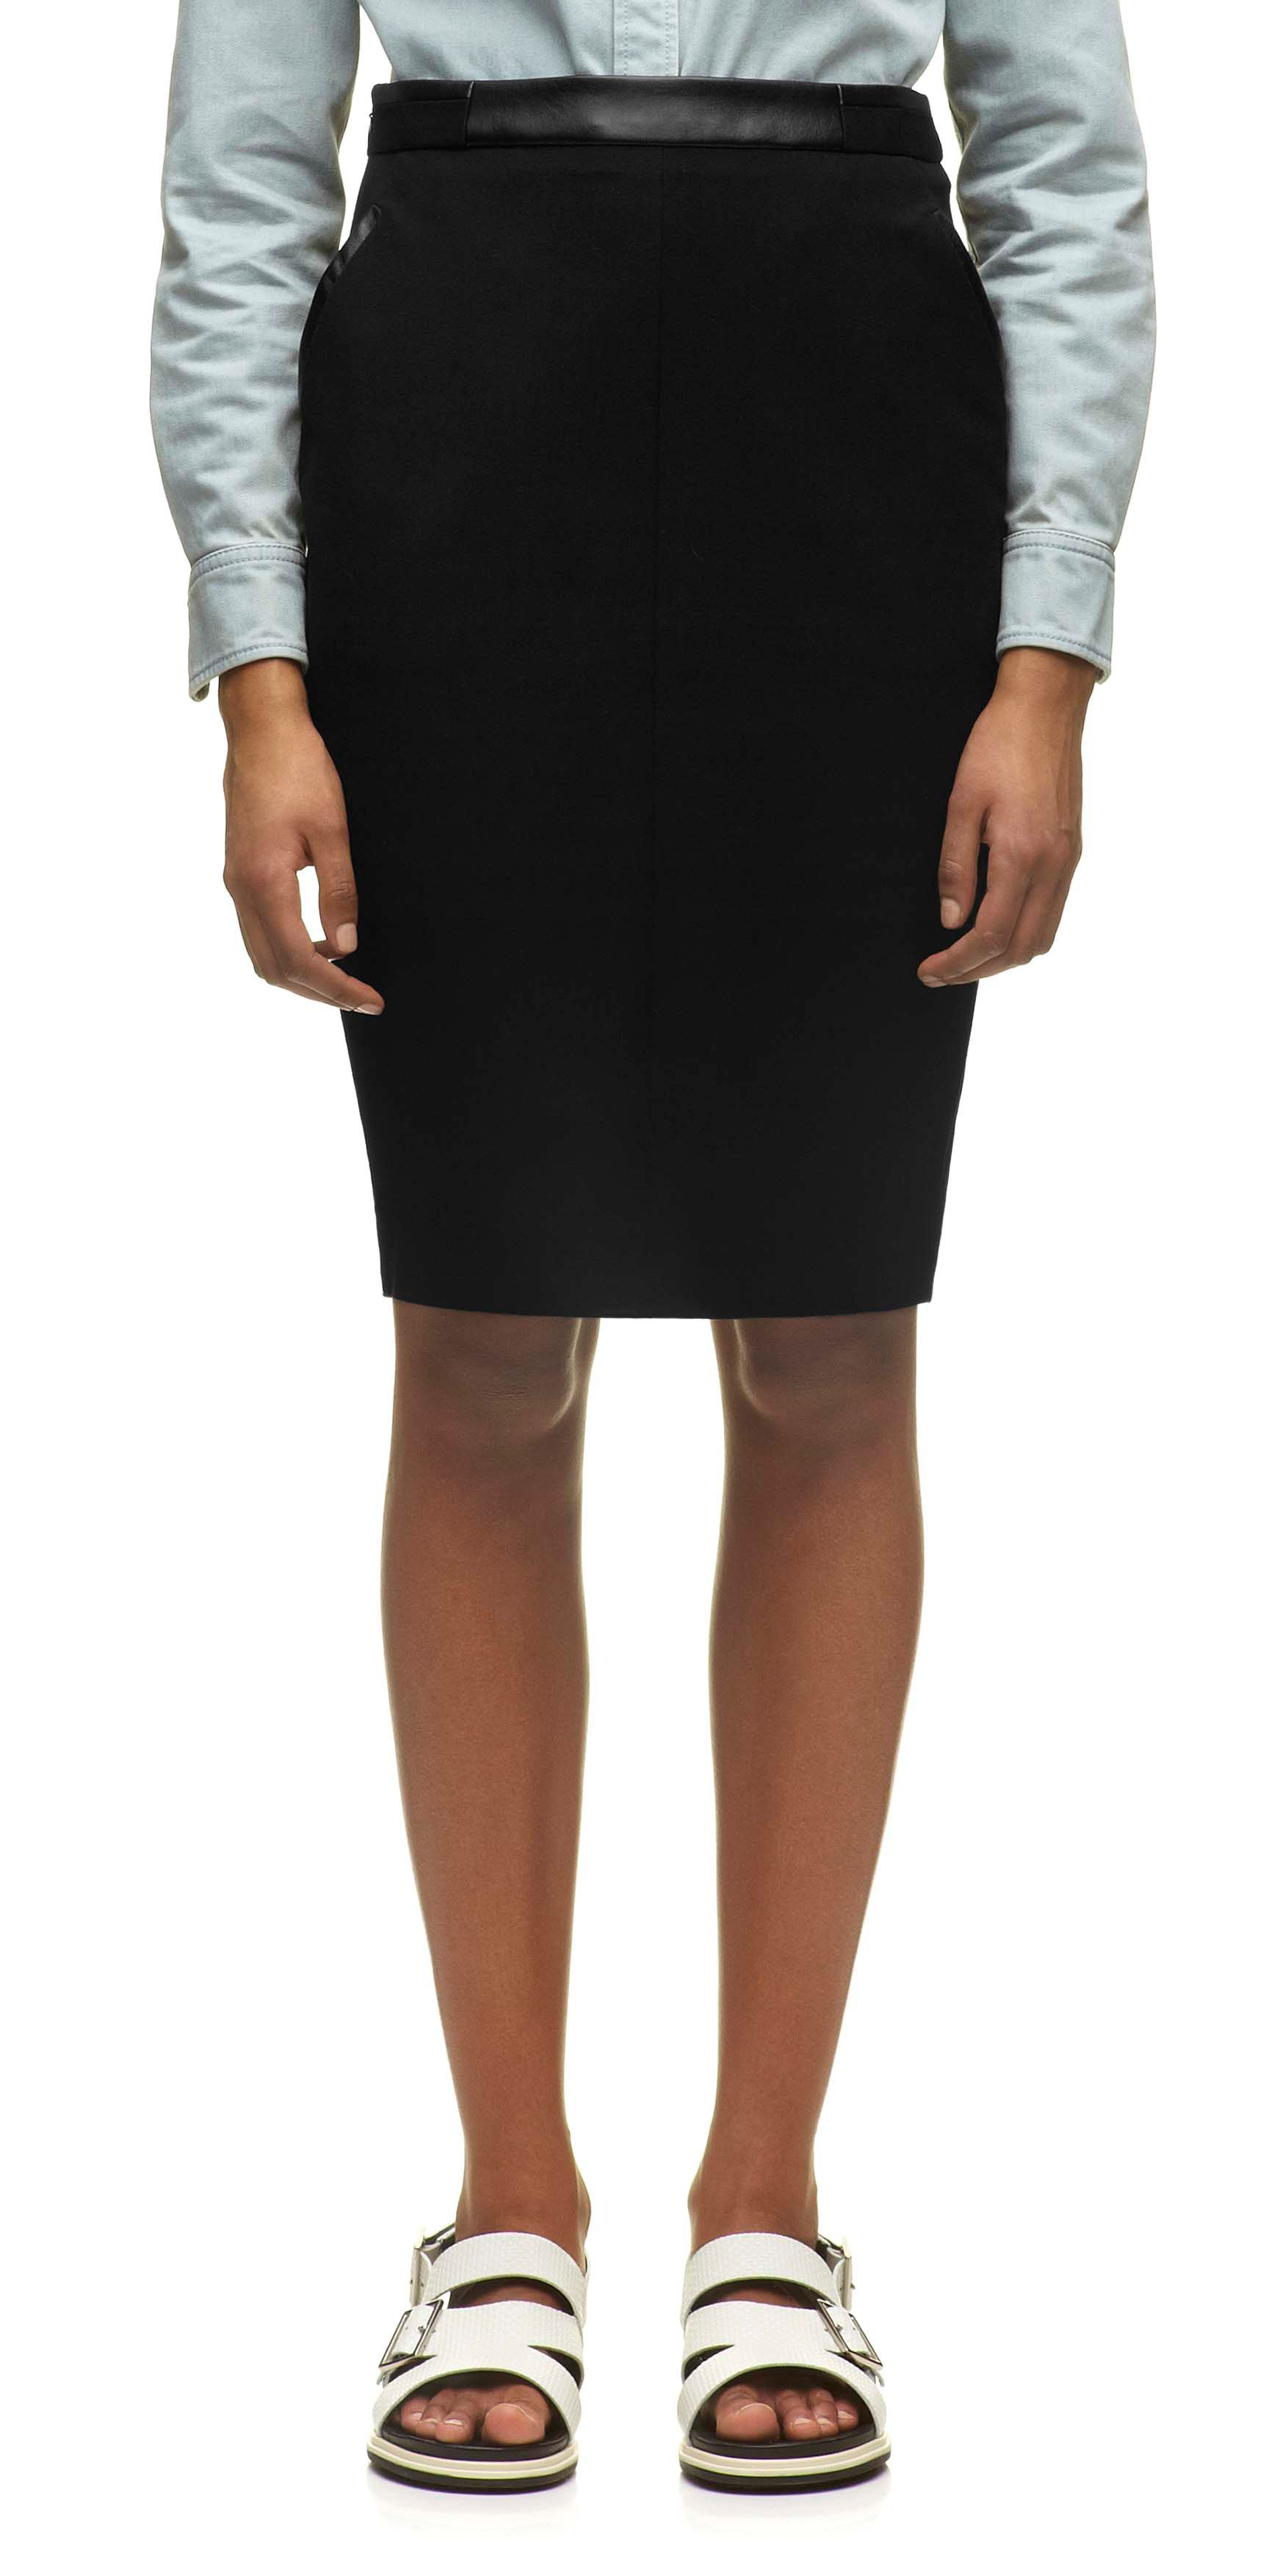 Nicolette pencil skirt